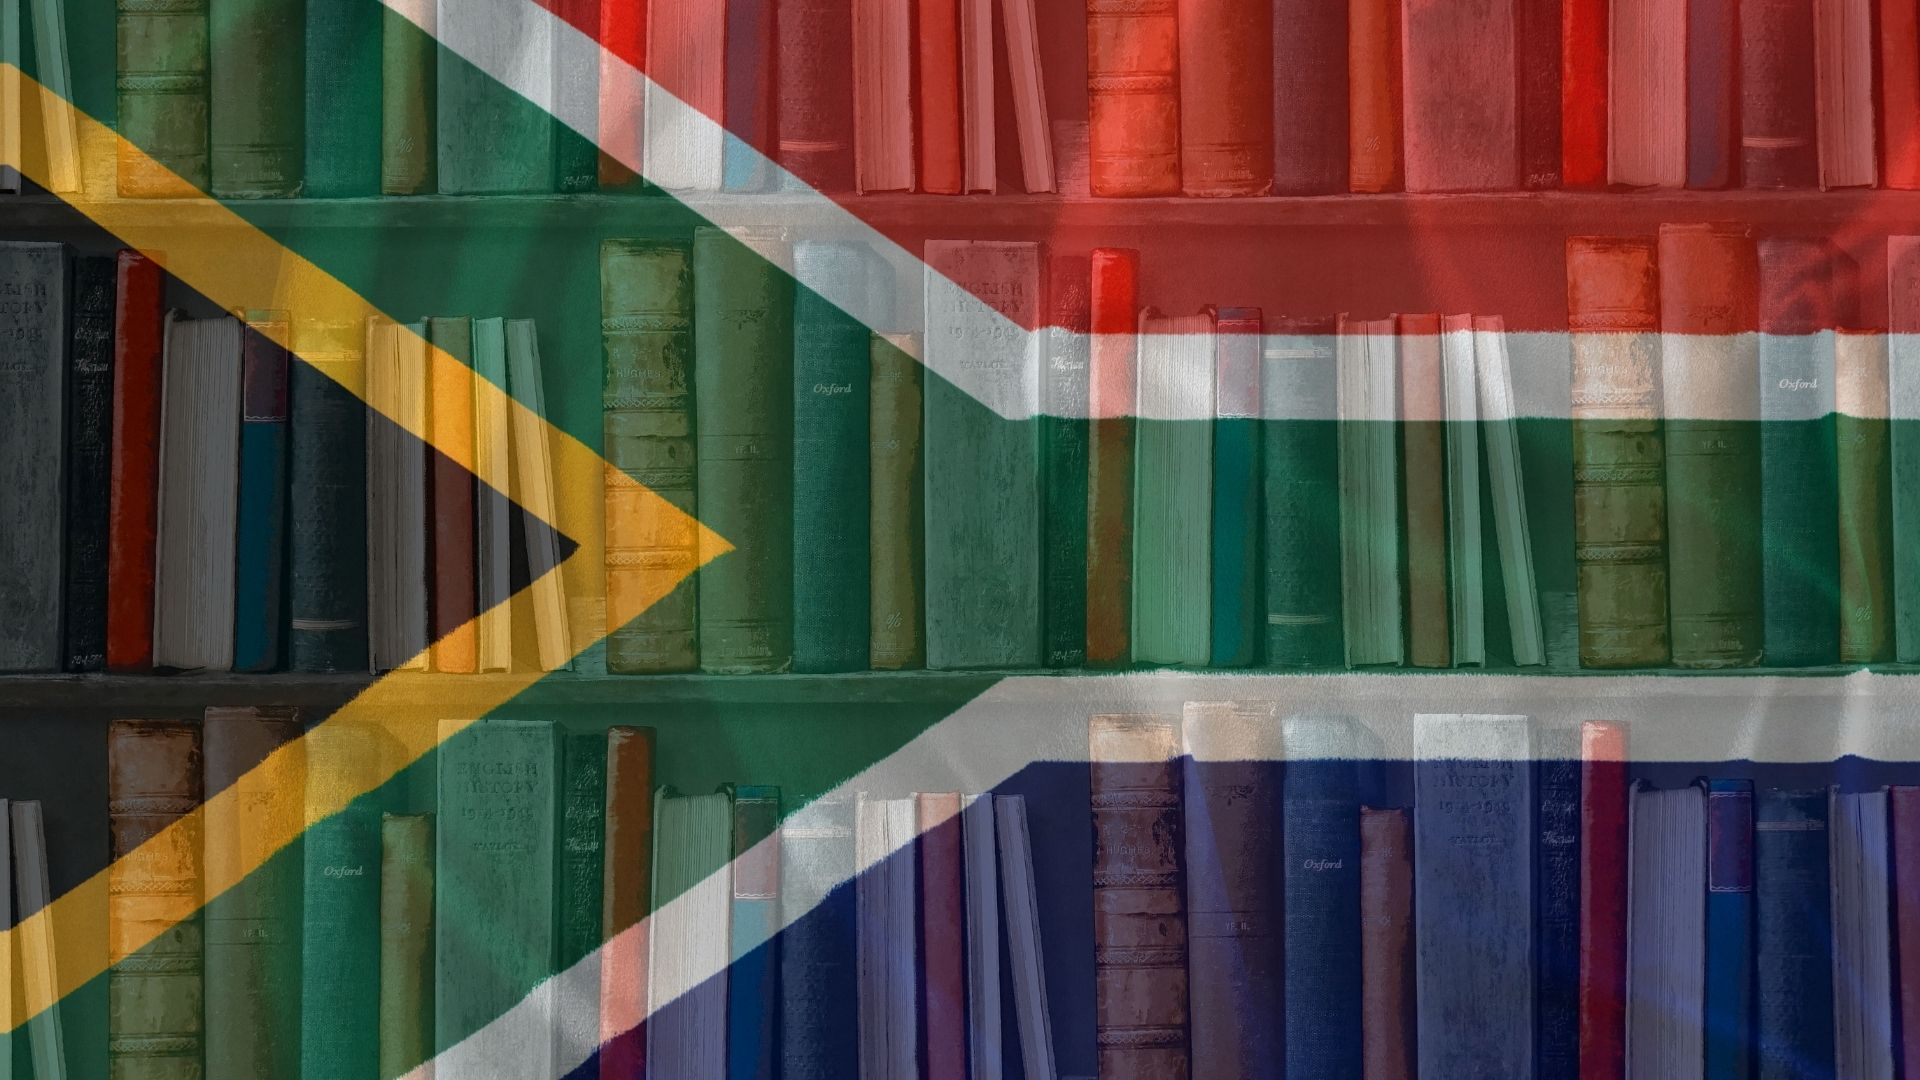 South Africa must place climate crisis literacy at the centre of its education system